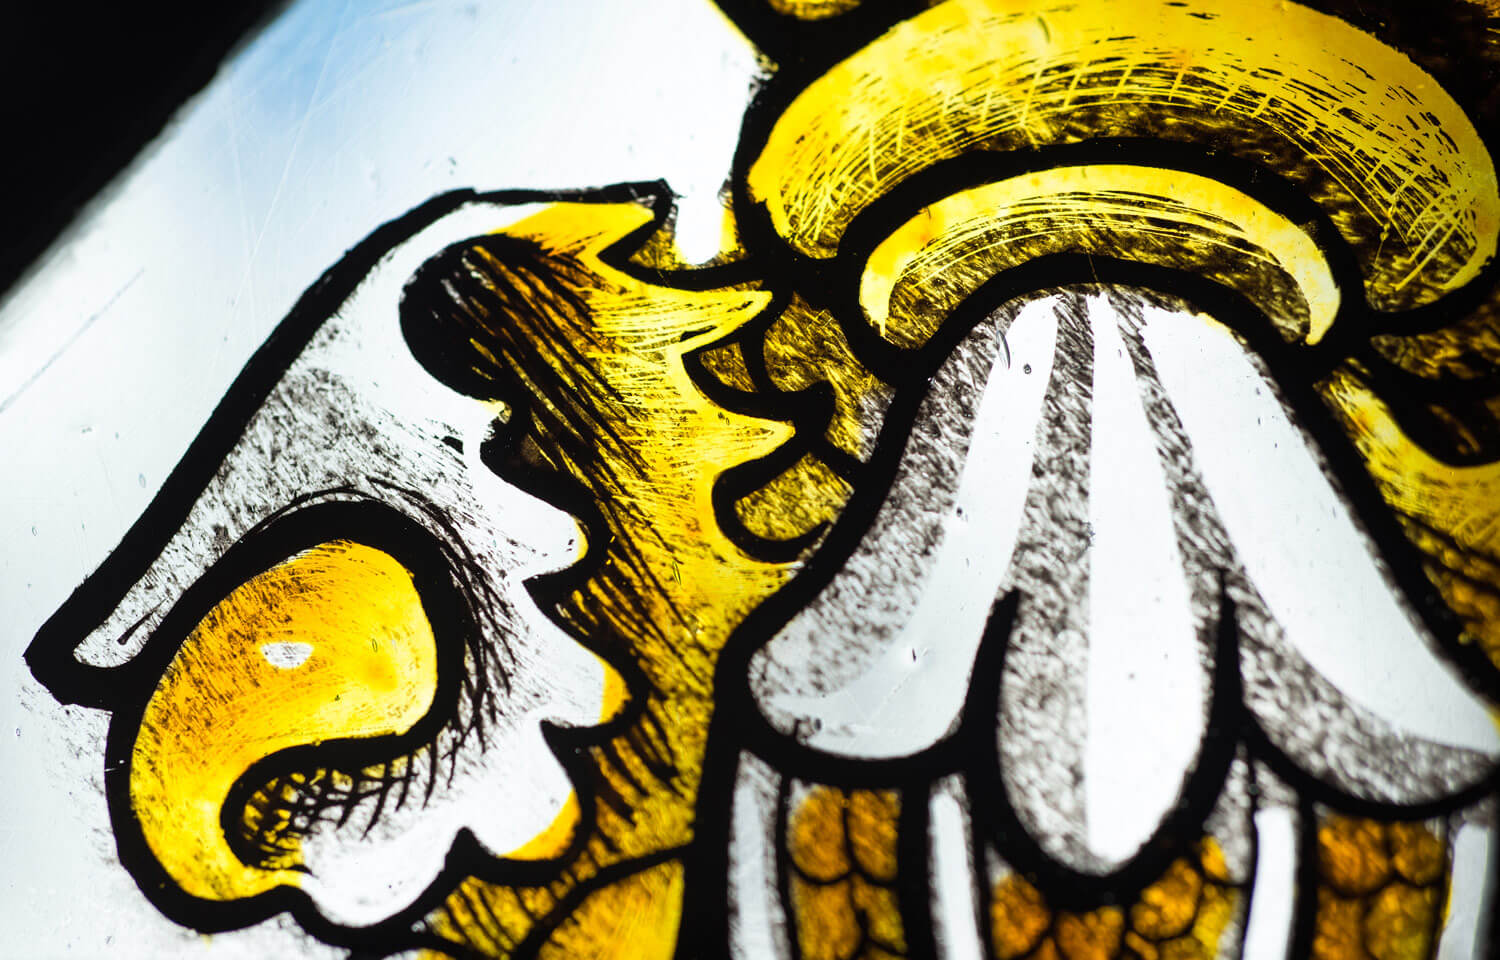 Painted glass on display at The Guildhall -